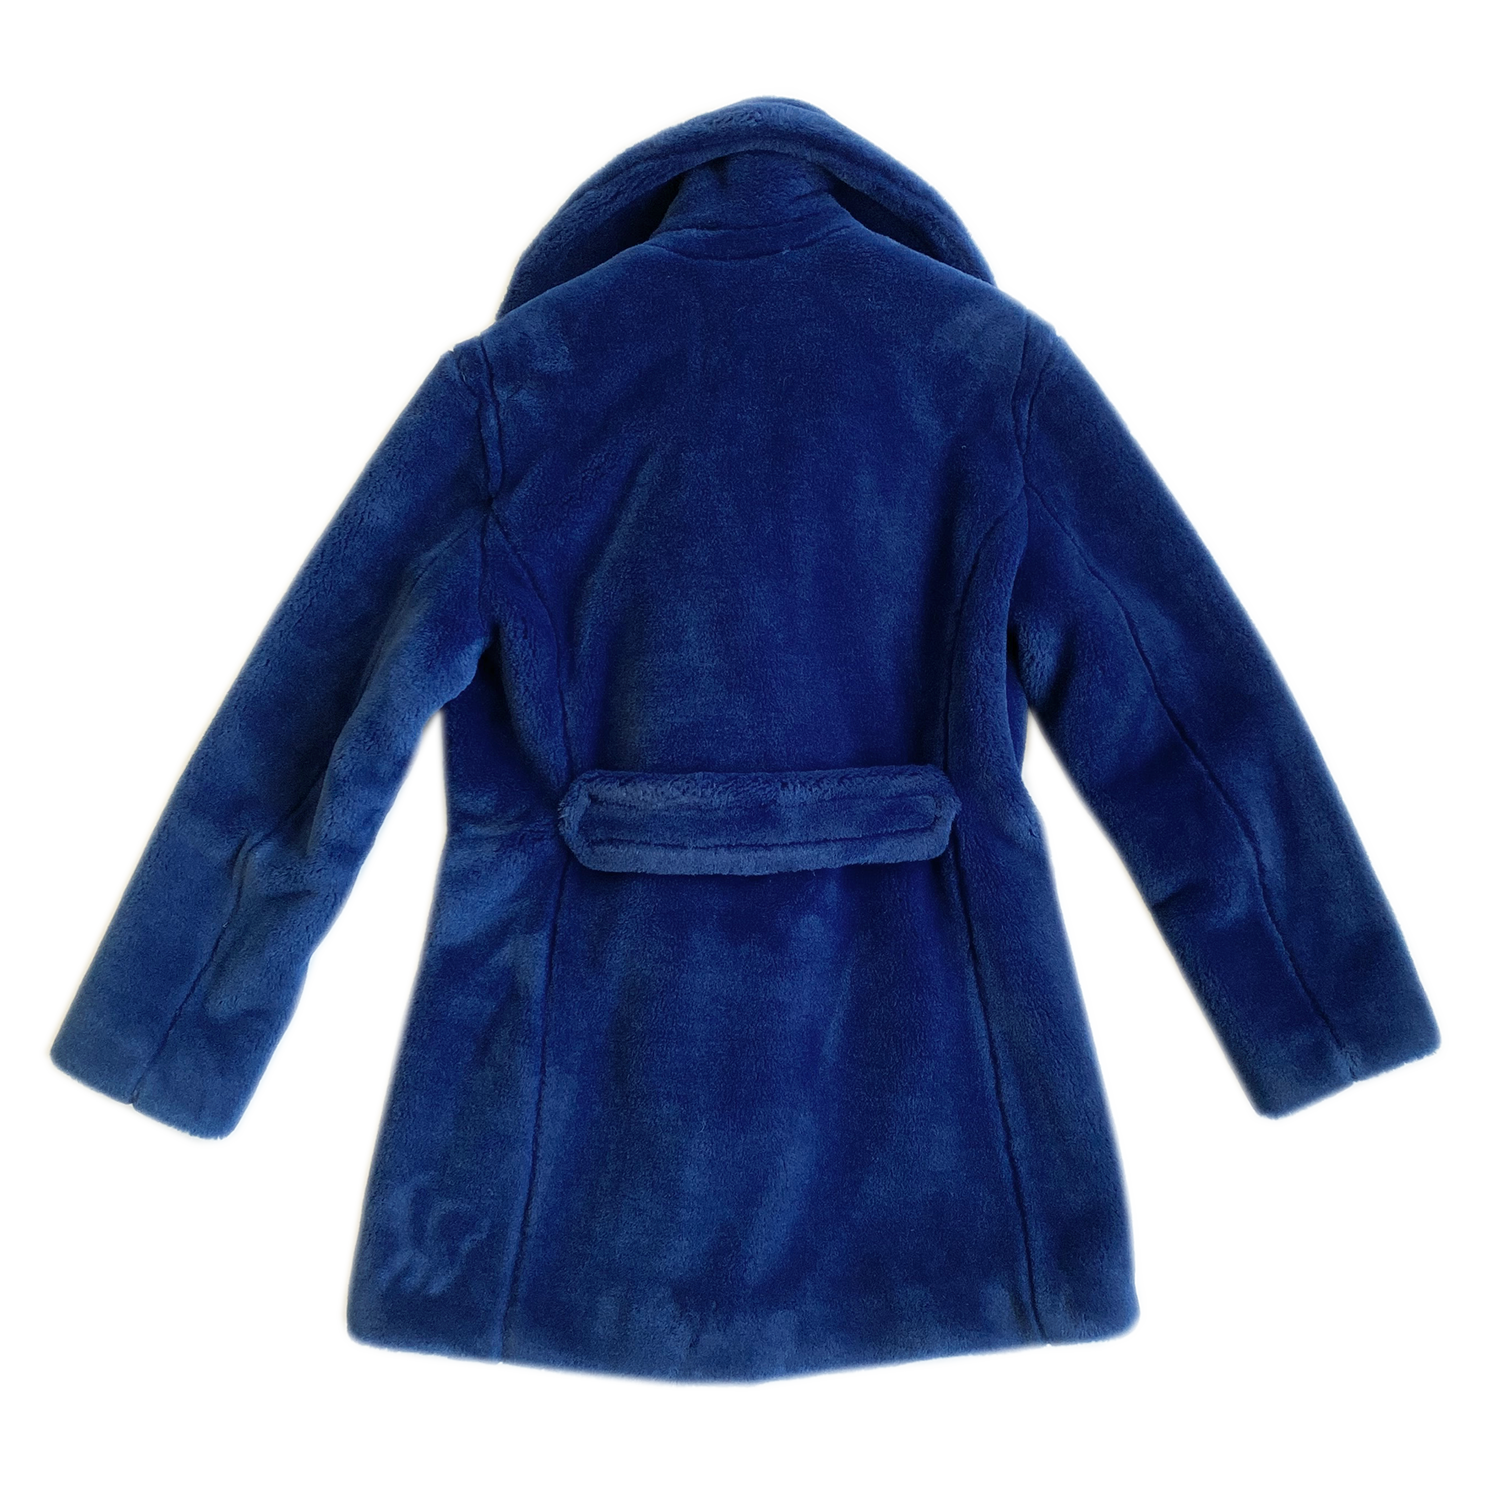 products/biofur_bluepeacoat_back.png